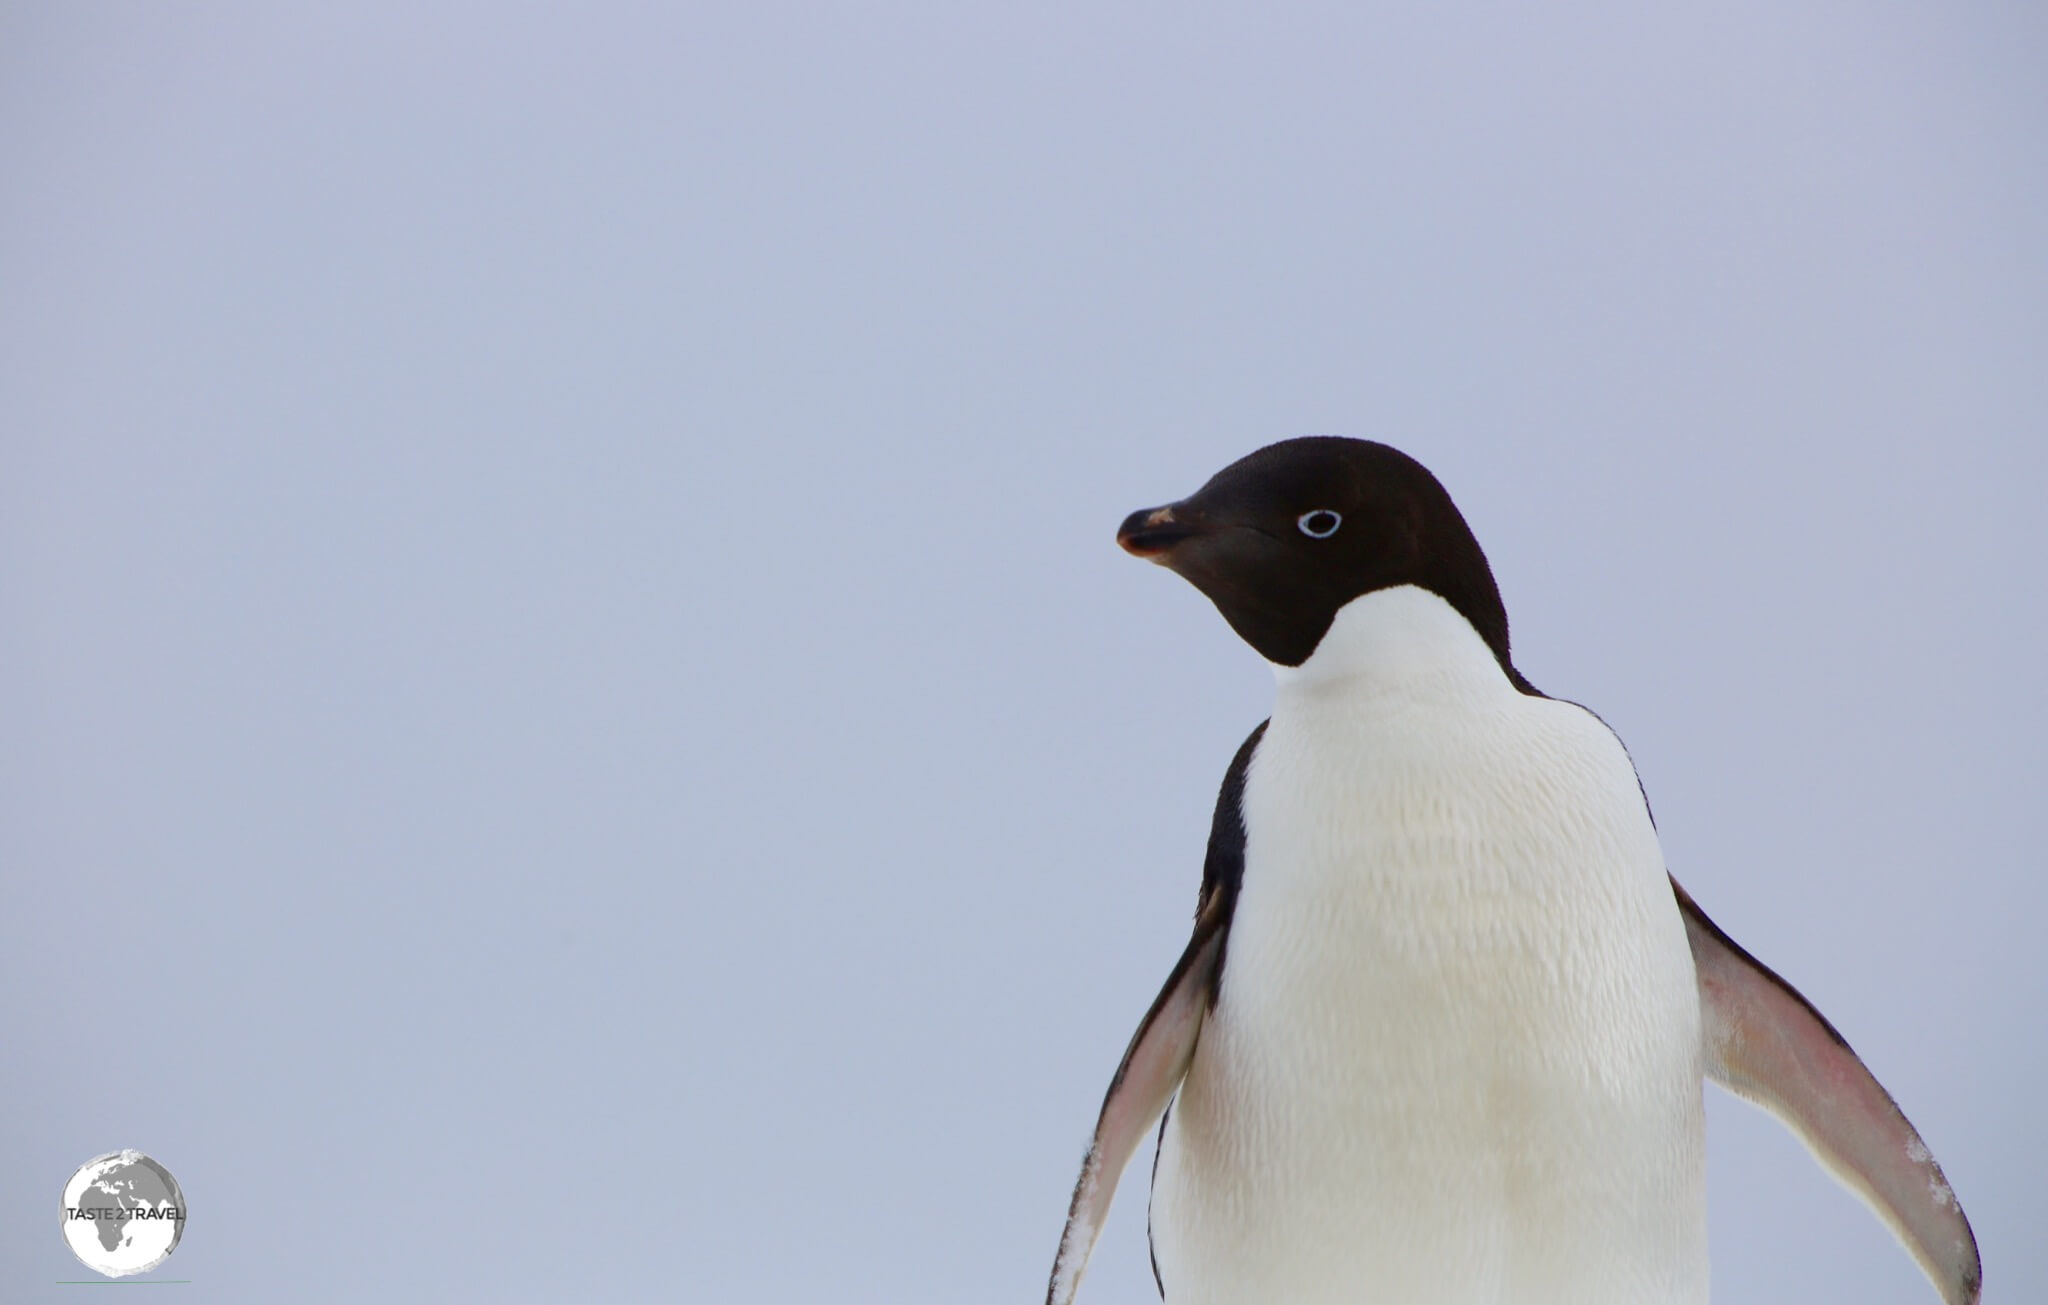 We first encountered the Adélie penguin at Detaille Island.